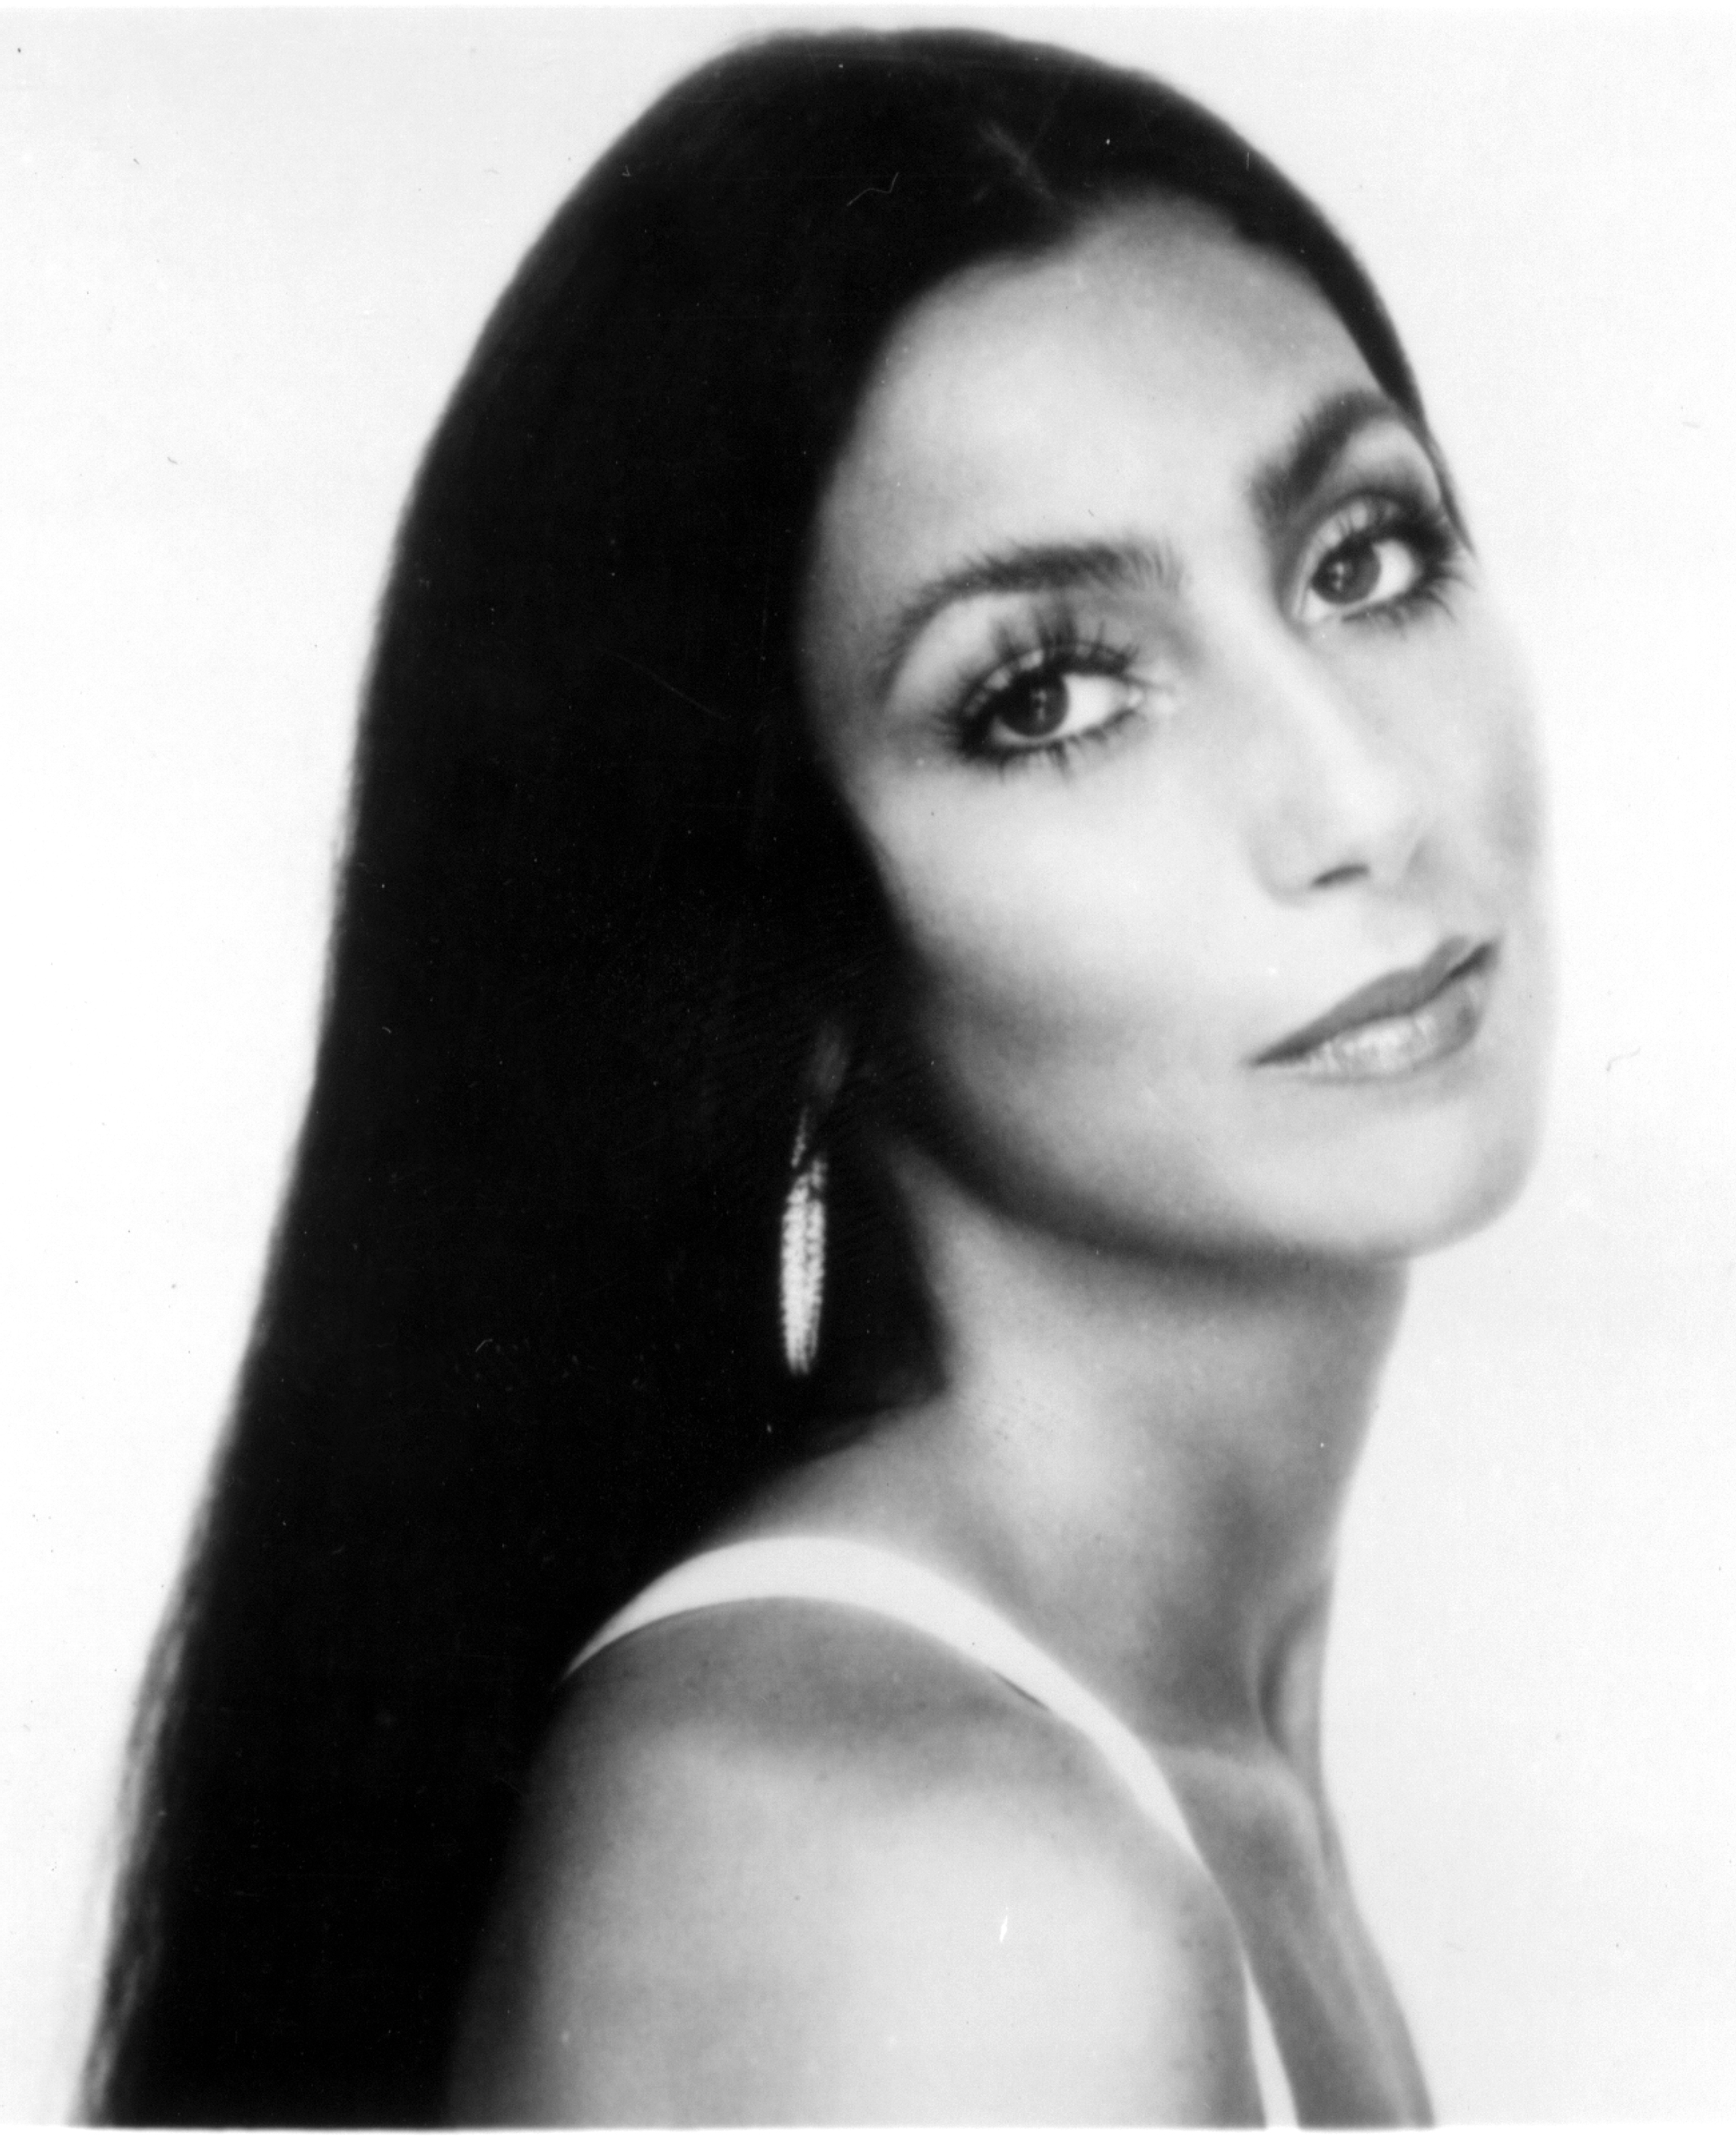 Cher Through The Years - Cher won the Golden Globe Award for best actress in a TV series for The Sonny & Cher Comedy Hour .